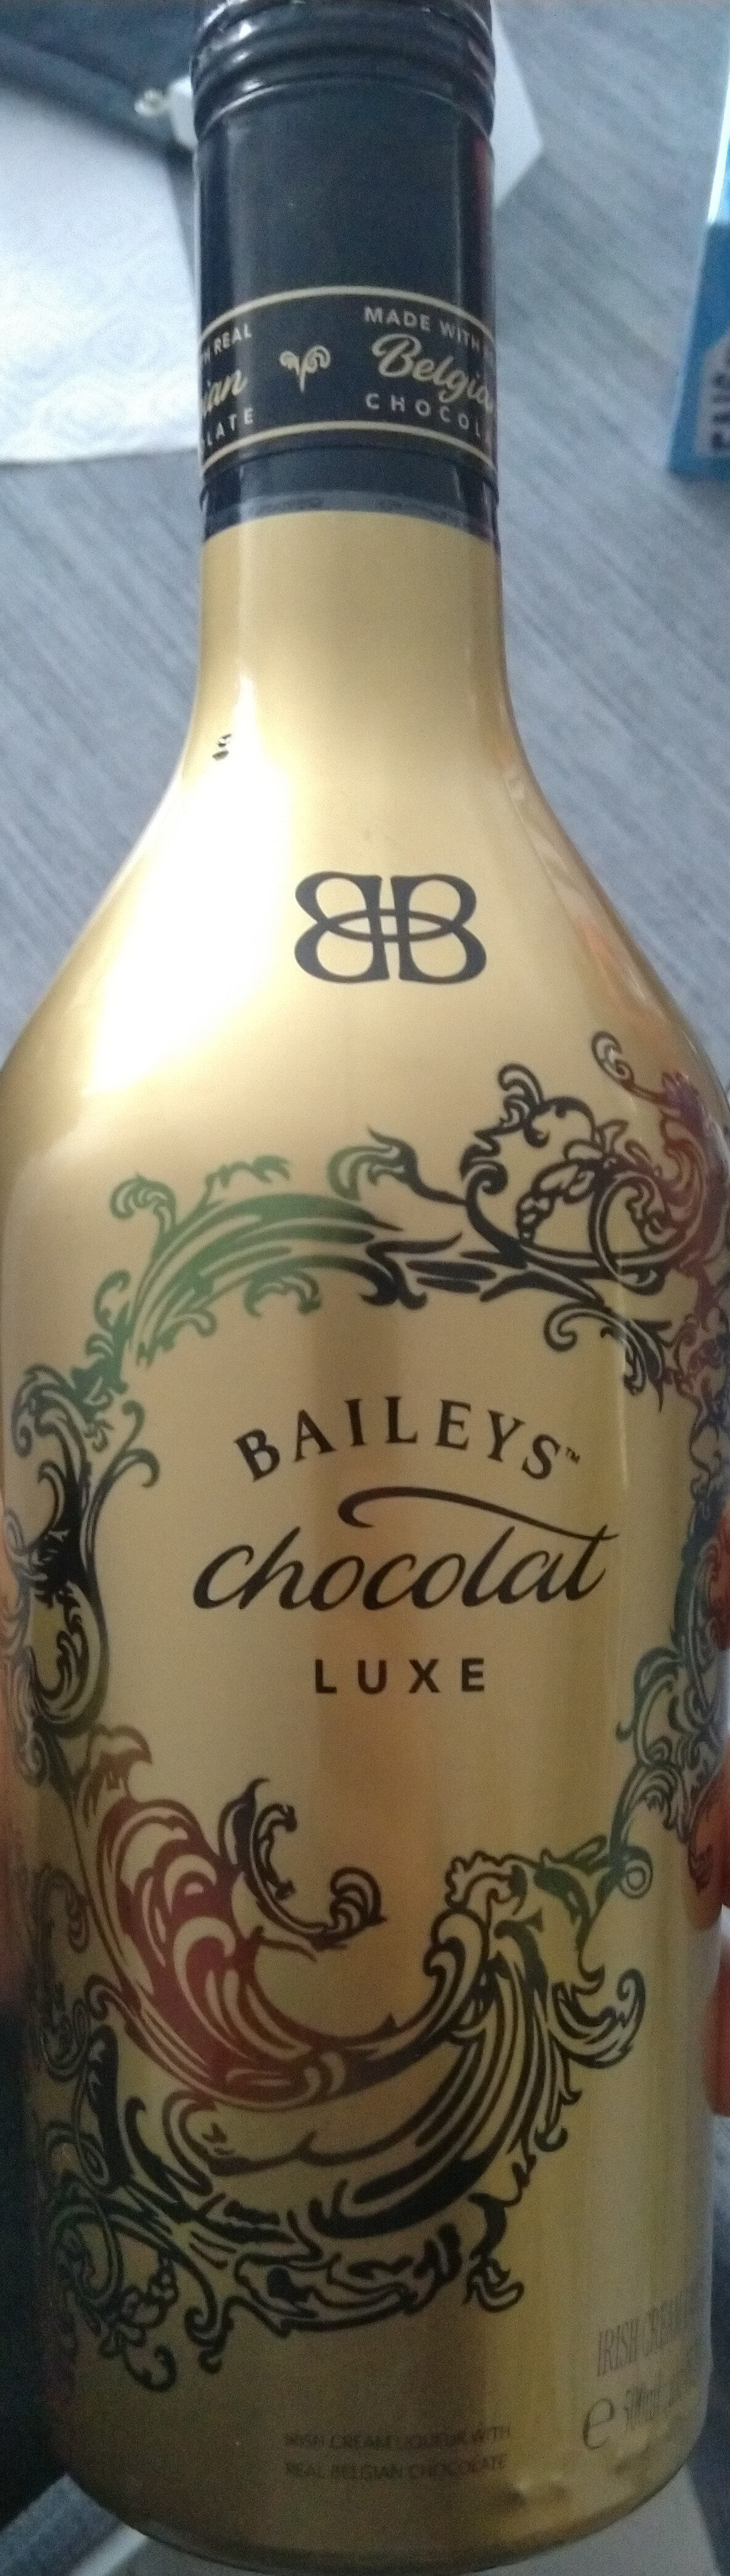 Crème Chocolat Luxe Baileys 15.7% 50 cl, 1 Bouteille - Product - fr